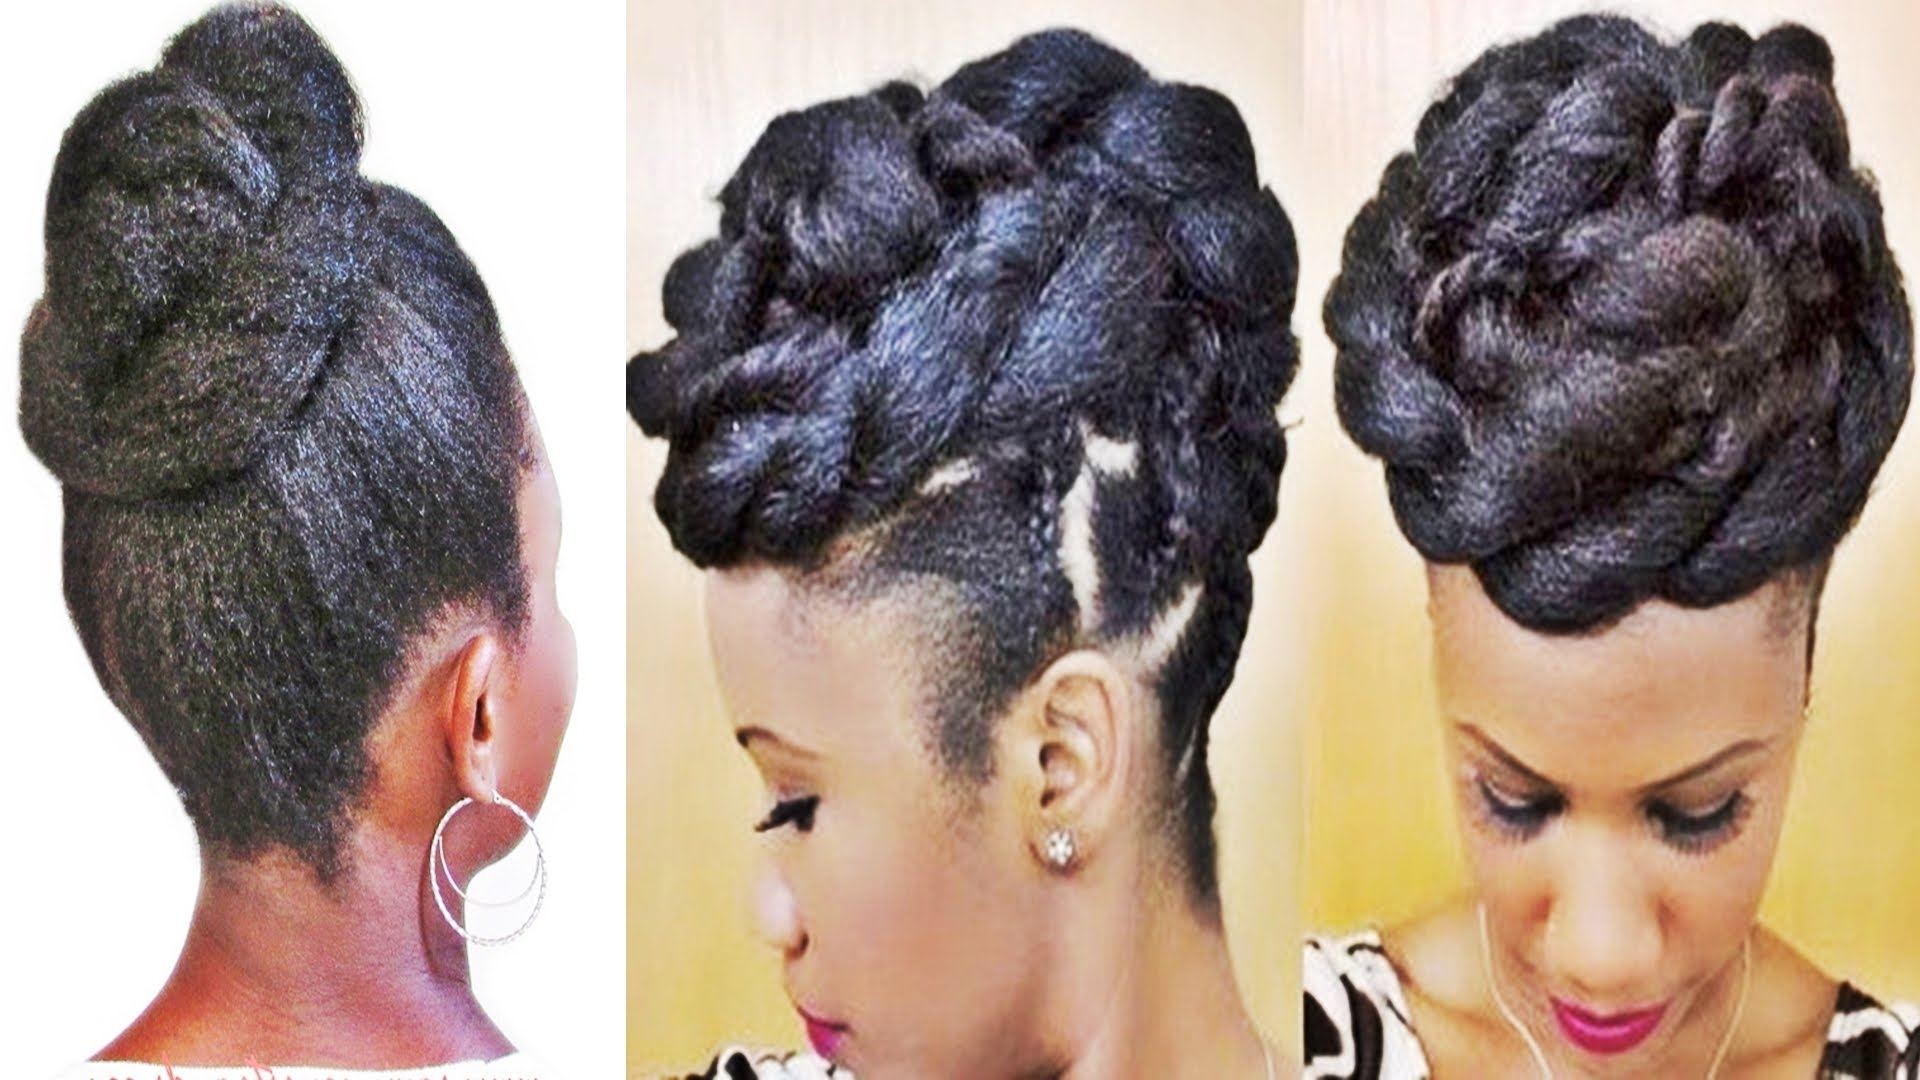 Braids And Twists Updo Hairstyle For Black Women – Youtube Intended For Updos For Black Hair (View 5 of 15)